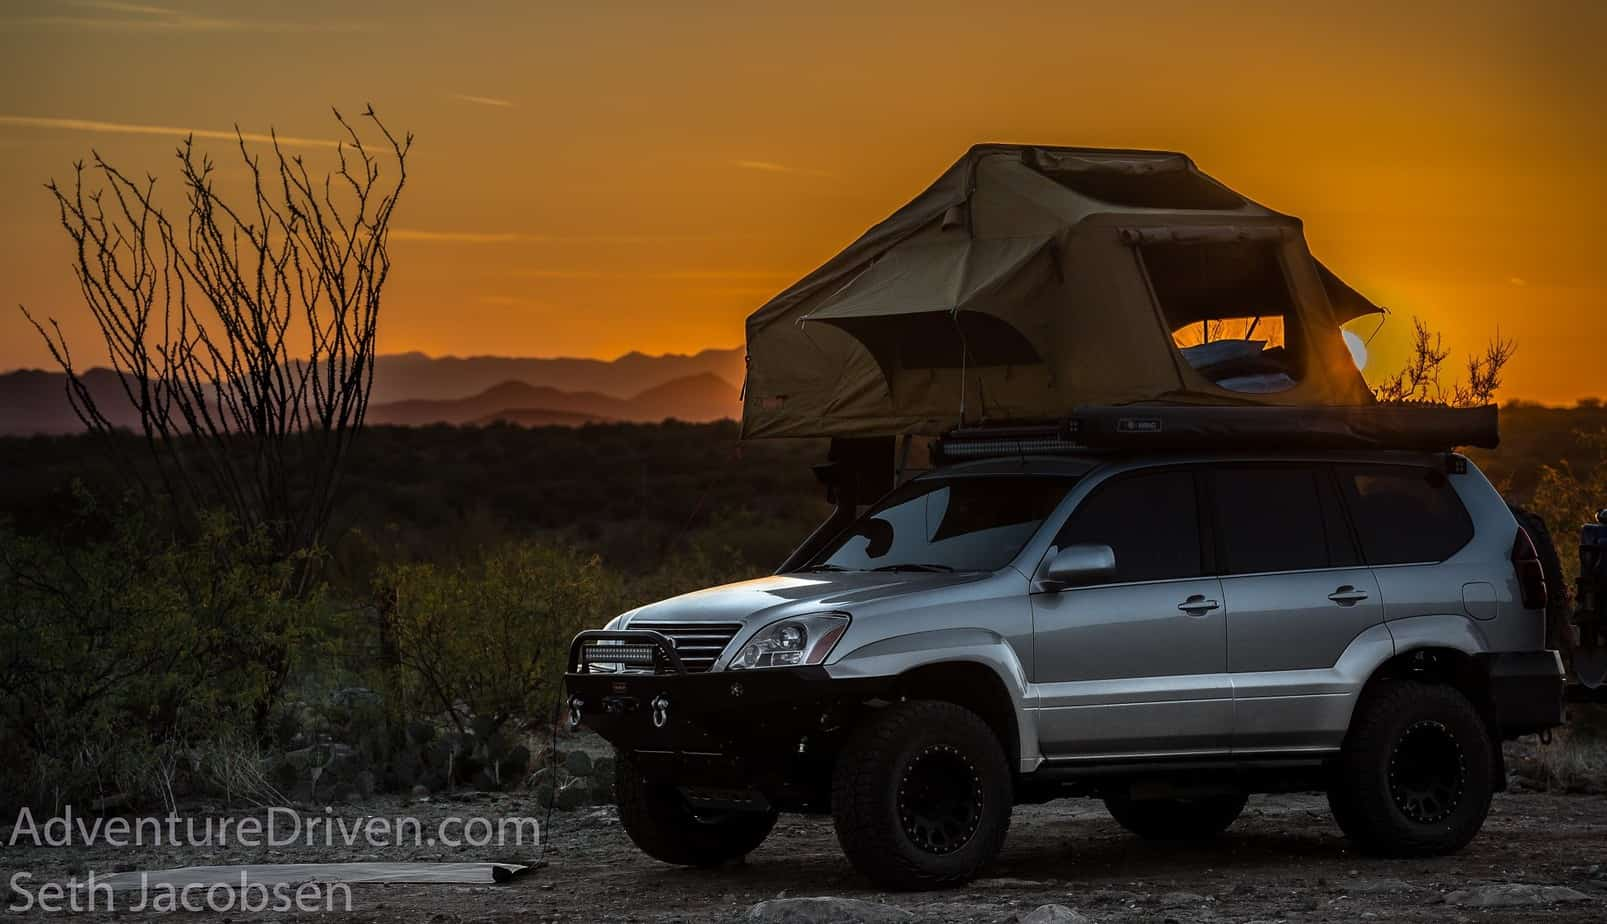 Adventure-Driven-23-Zero-tent-sunset-1-2